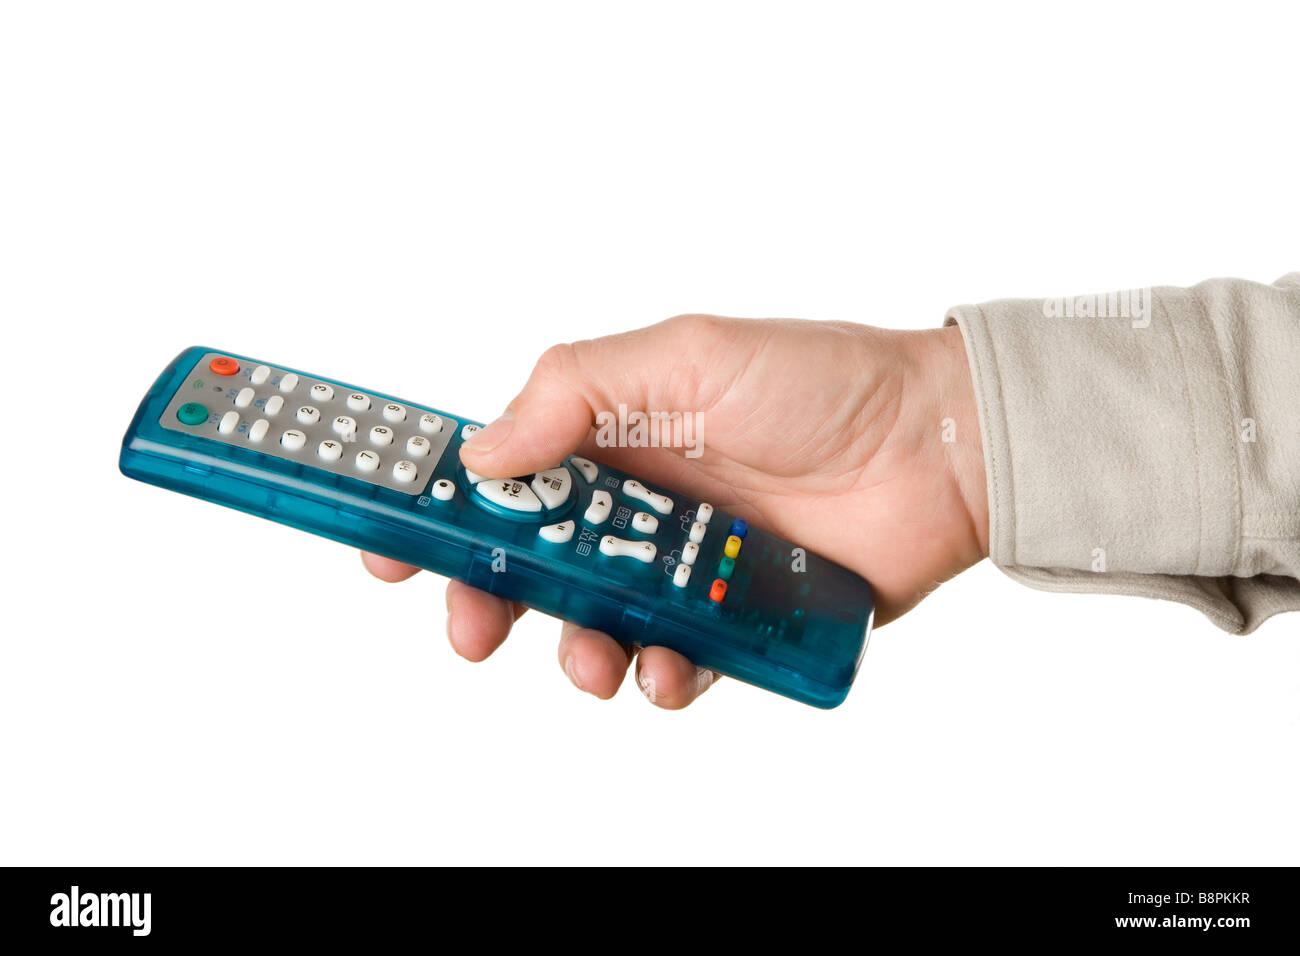 Hand using a TV remote control - Stock Image